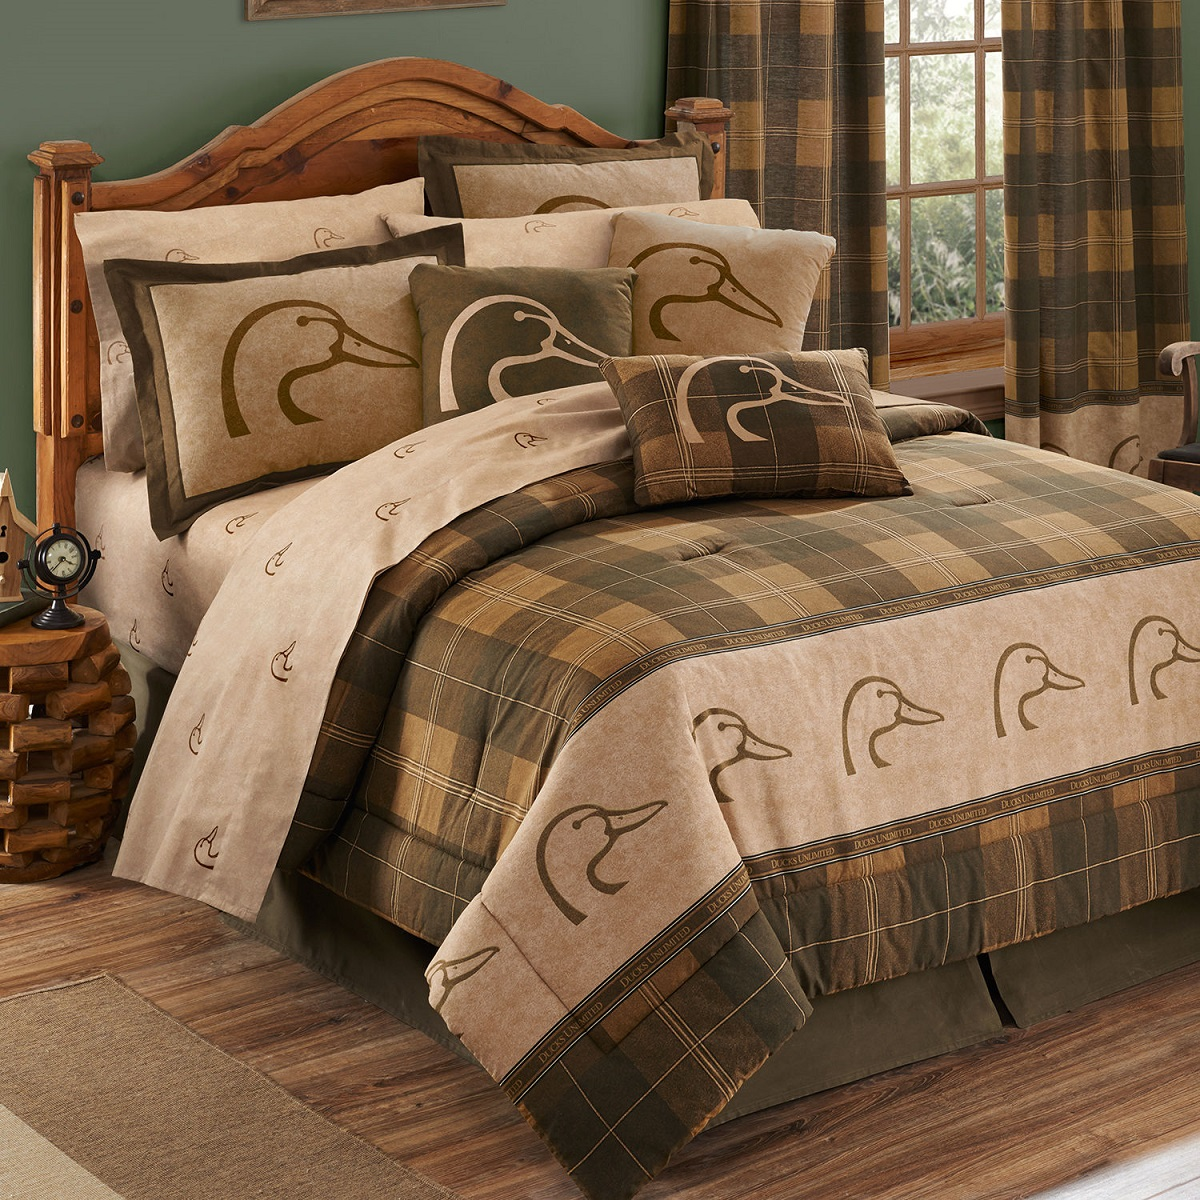 Ducks Unlimited Plain Bedding Bed In A Bag Comforter Sheets